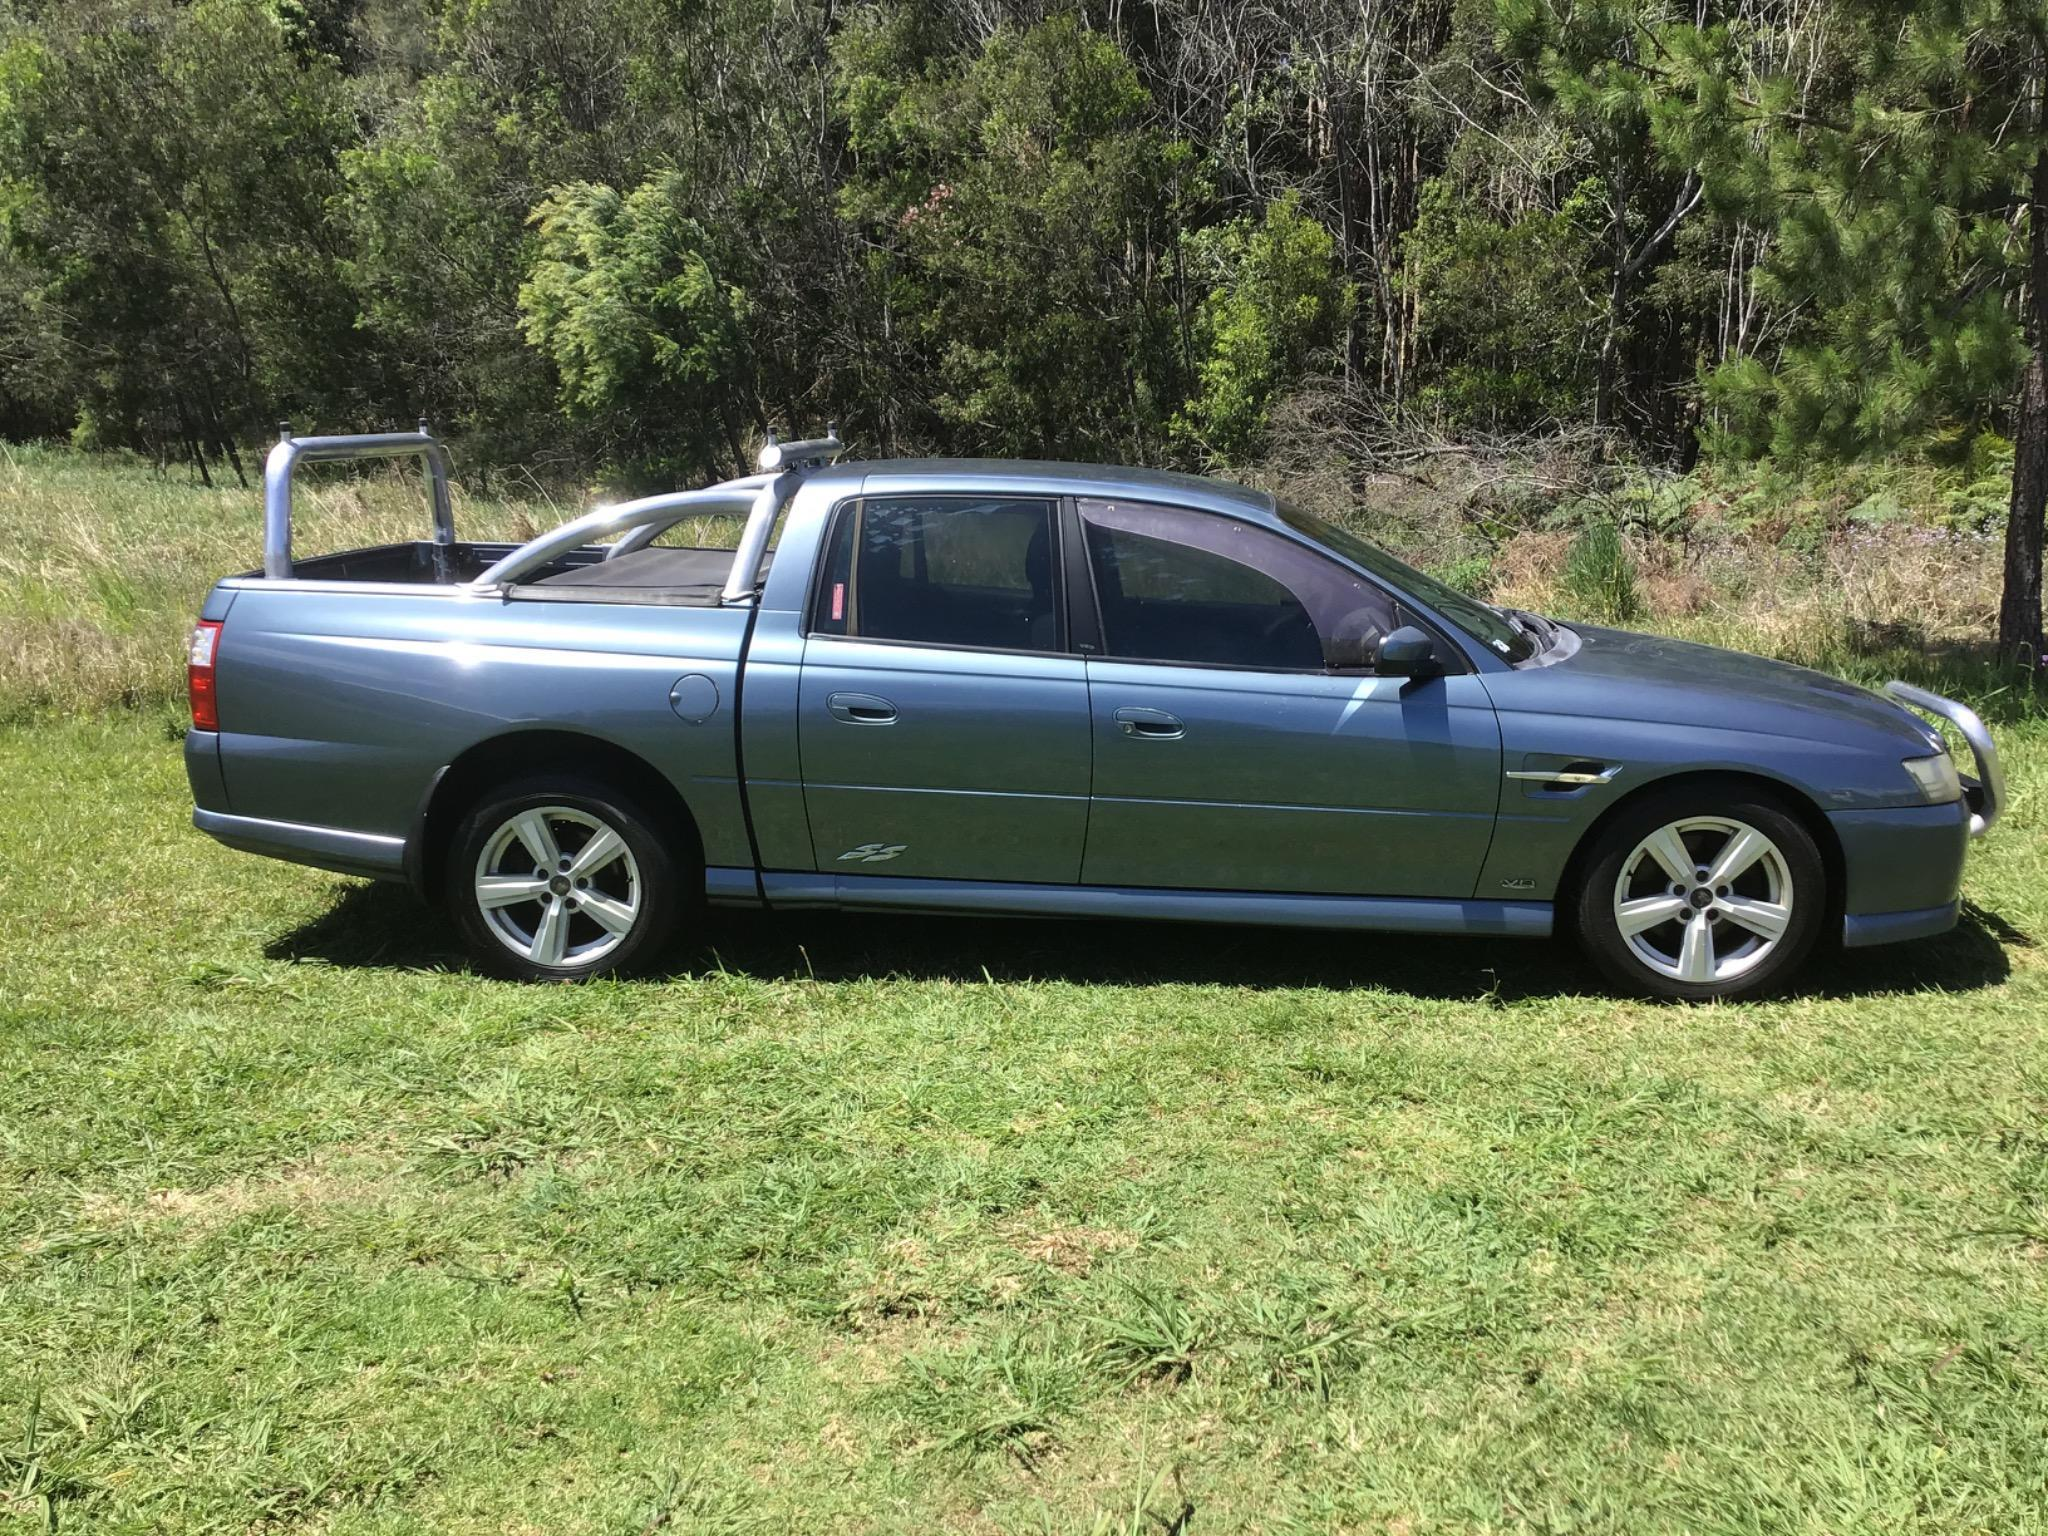 2006 Holden Crewman VZ SS Utility Dual Cab 4dr Auto 4sp 6.0i Picture 8